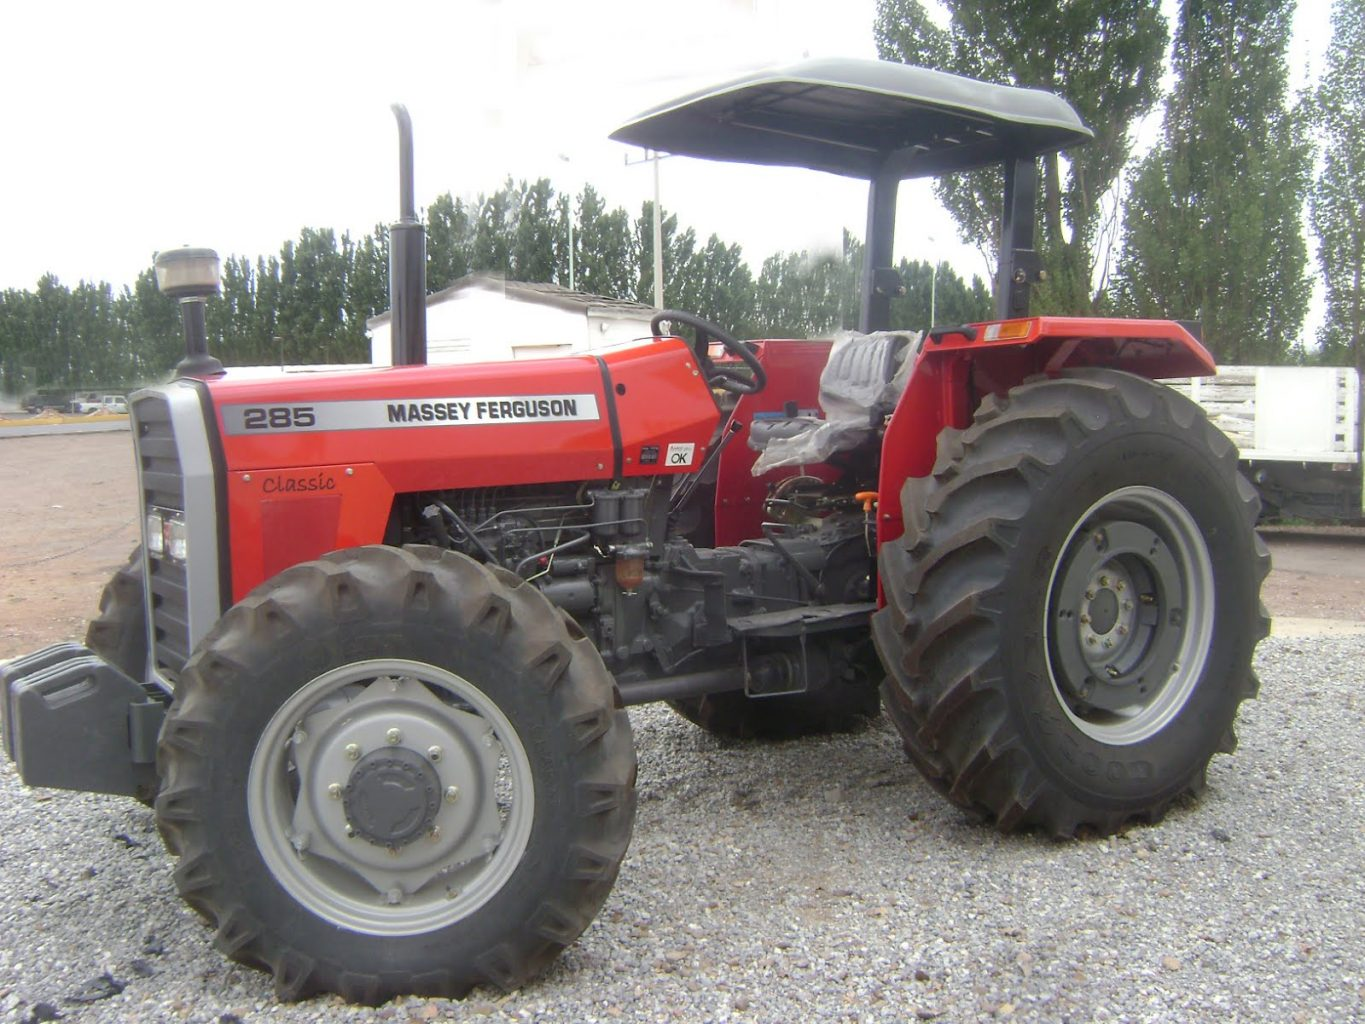 Massey-ferguson-285-design view